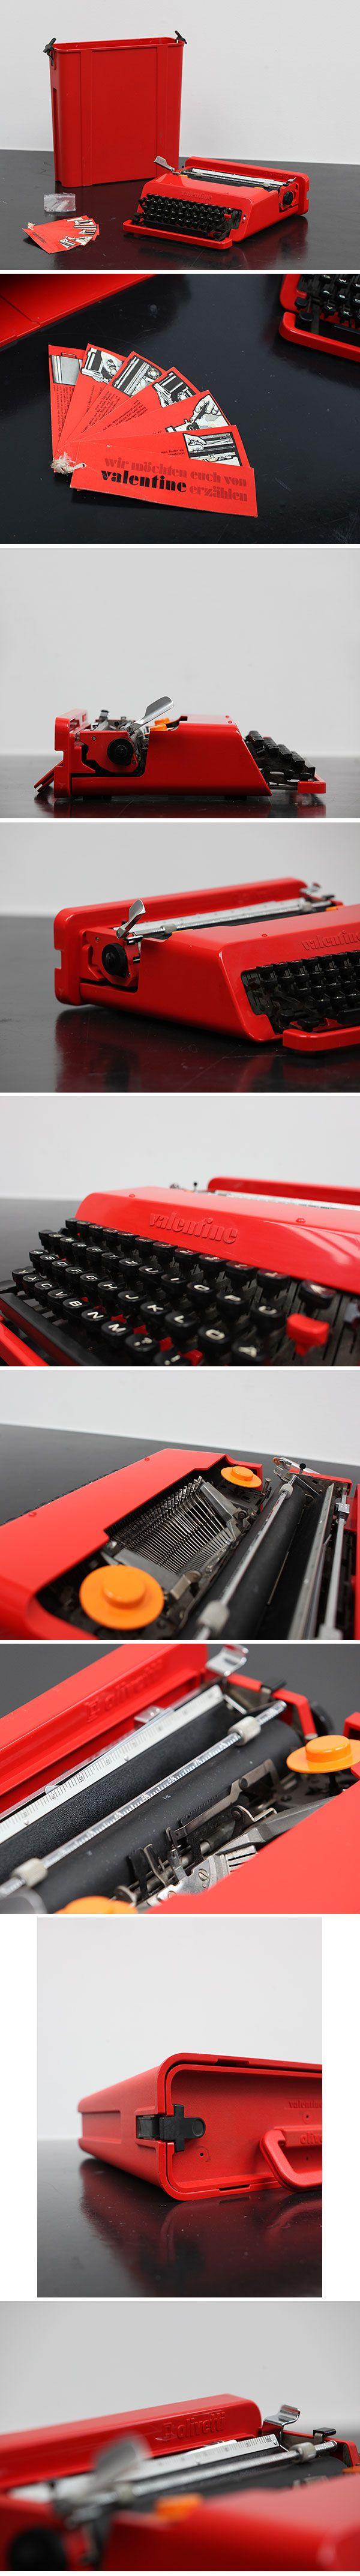 Valentine typewriter for Olivetti 1969